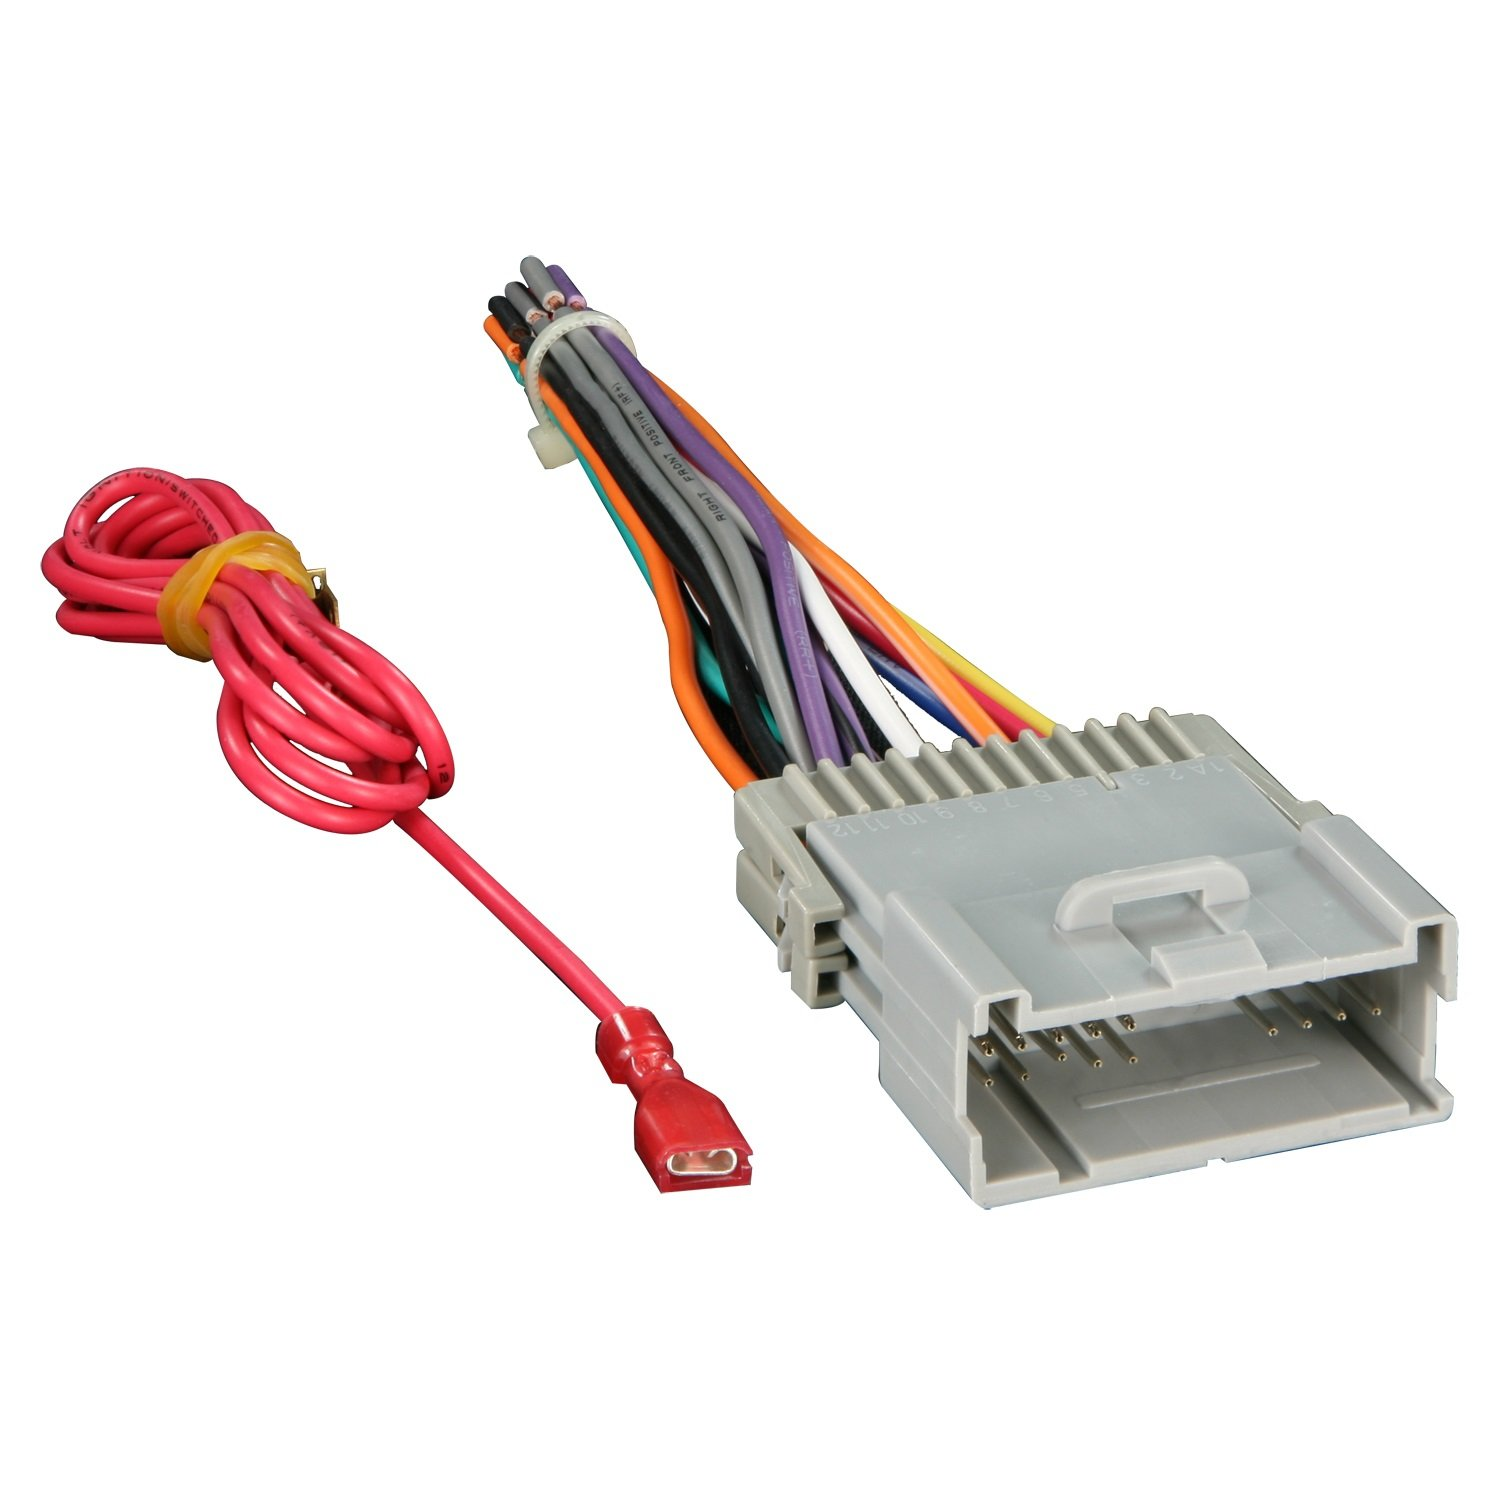 61eewxp9orL._SL1500_ amazon com metra 70 2003 radio wiring harness for gm 98 08 05 impala stereo wiring harness at n-0.co